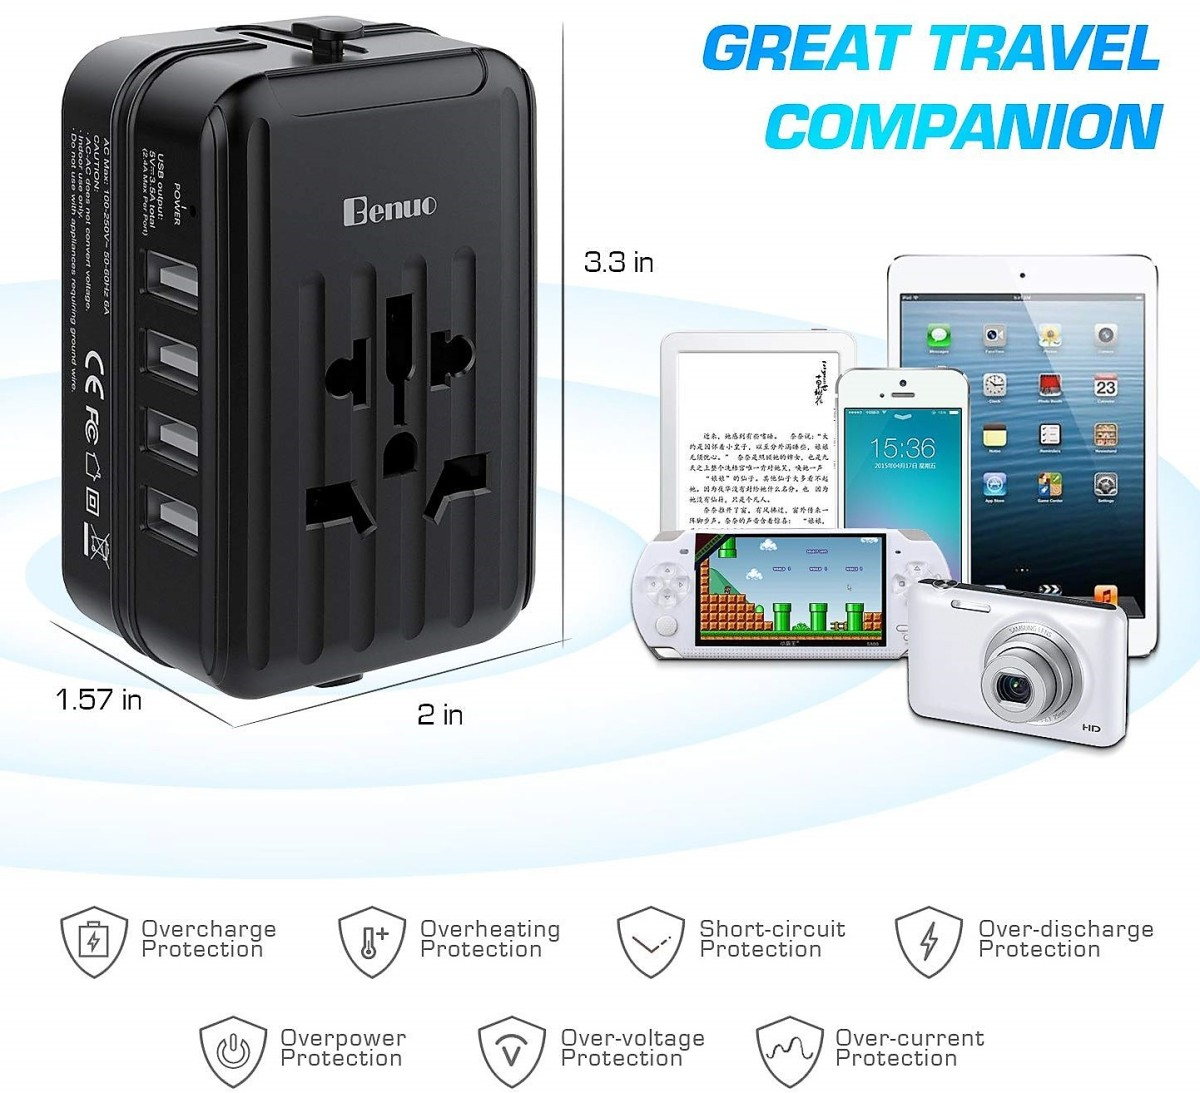 Benuo Travel Adapter Review: All-in-one Universal Power Adapter